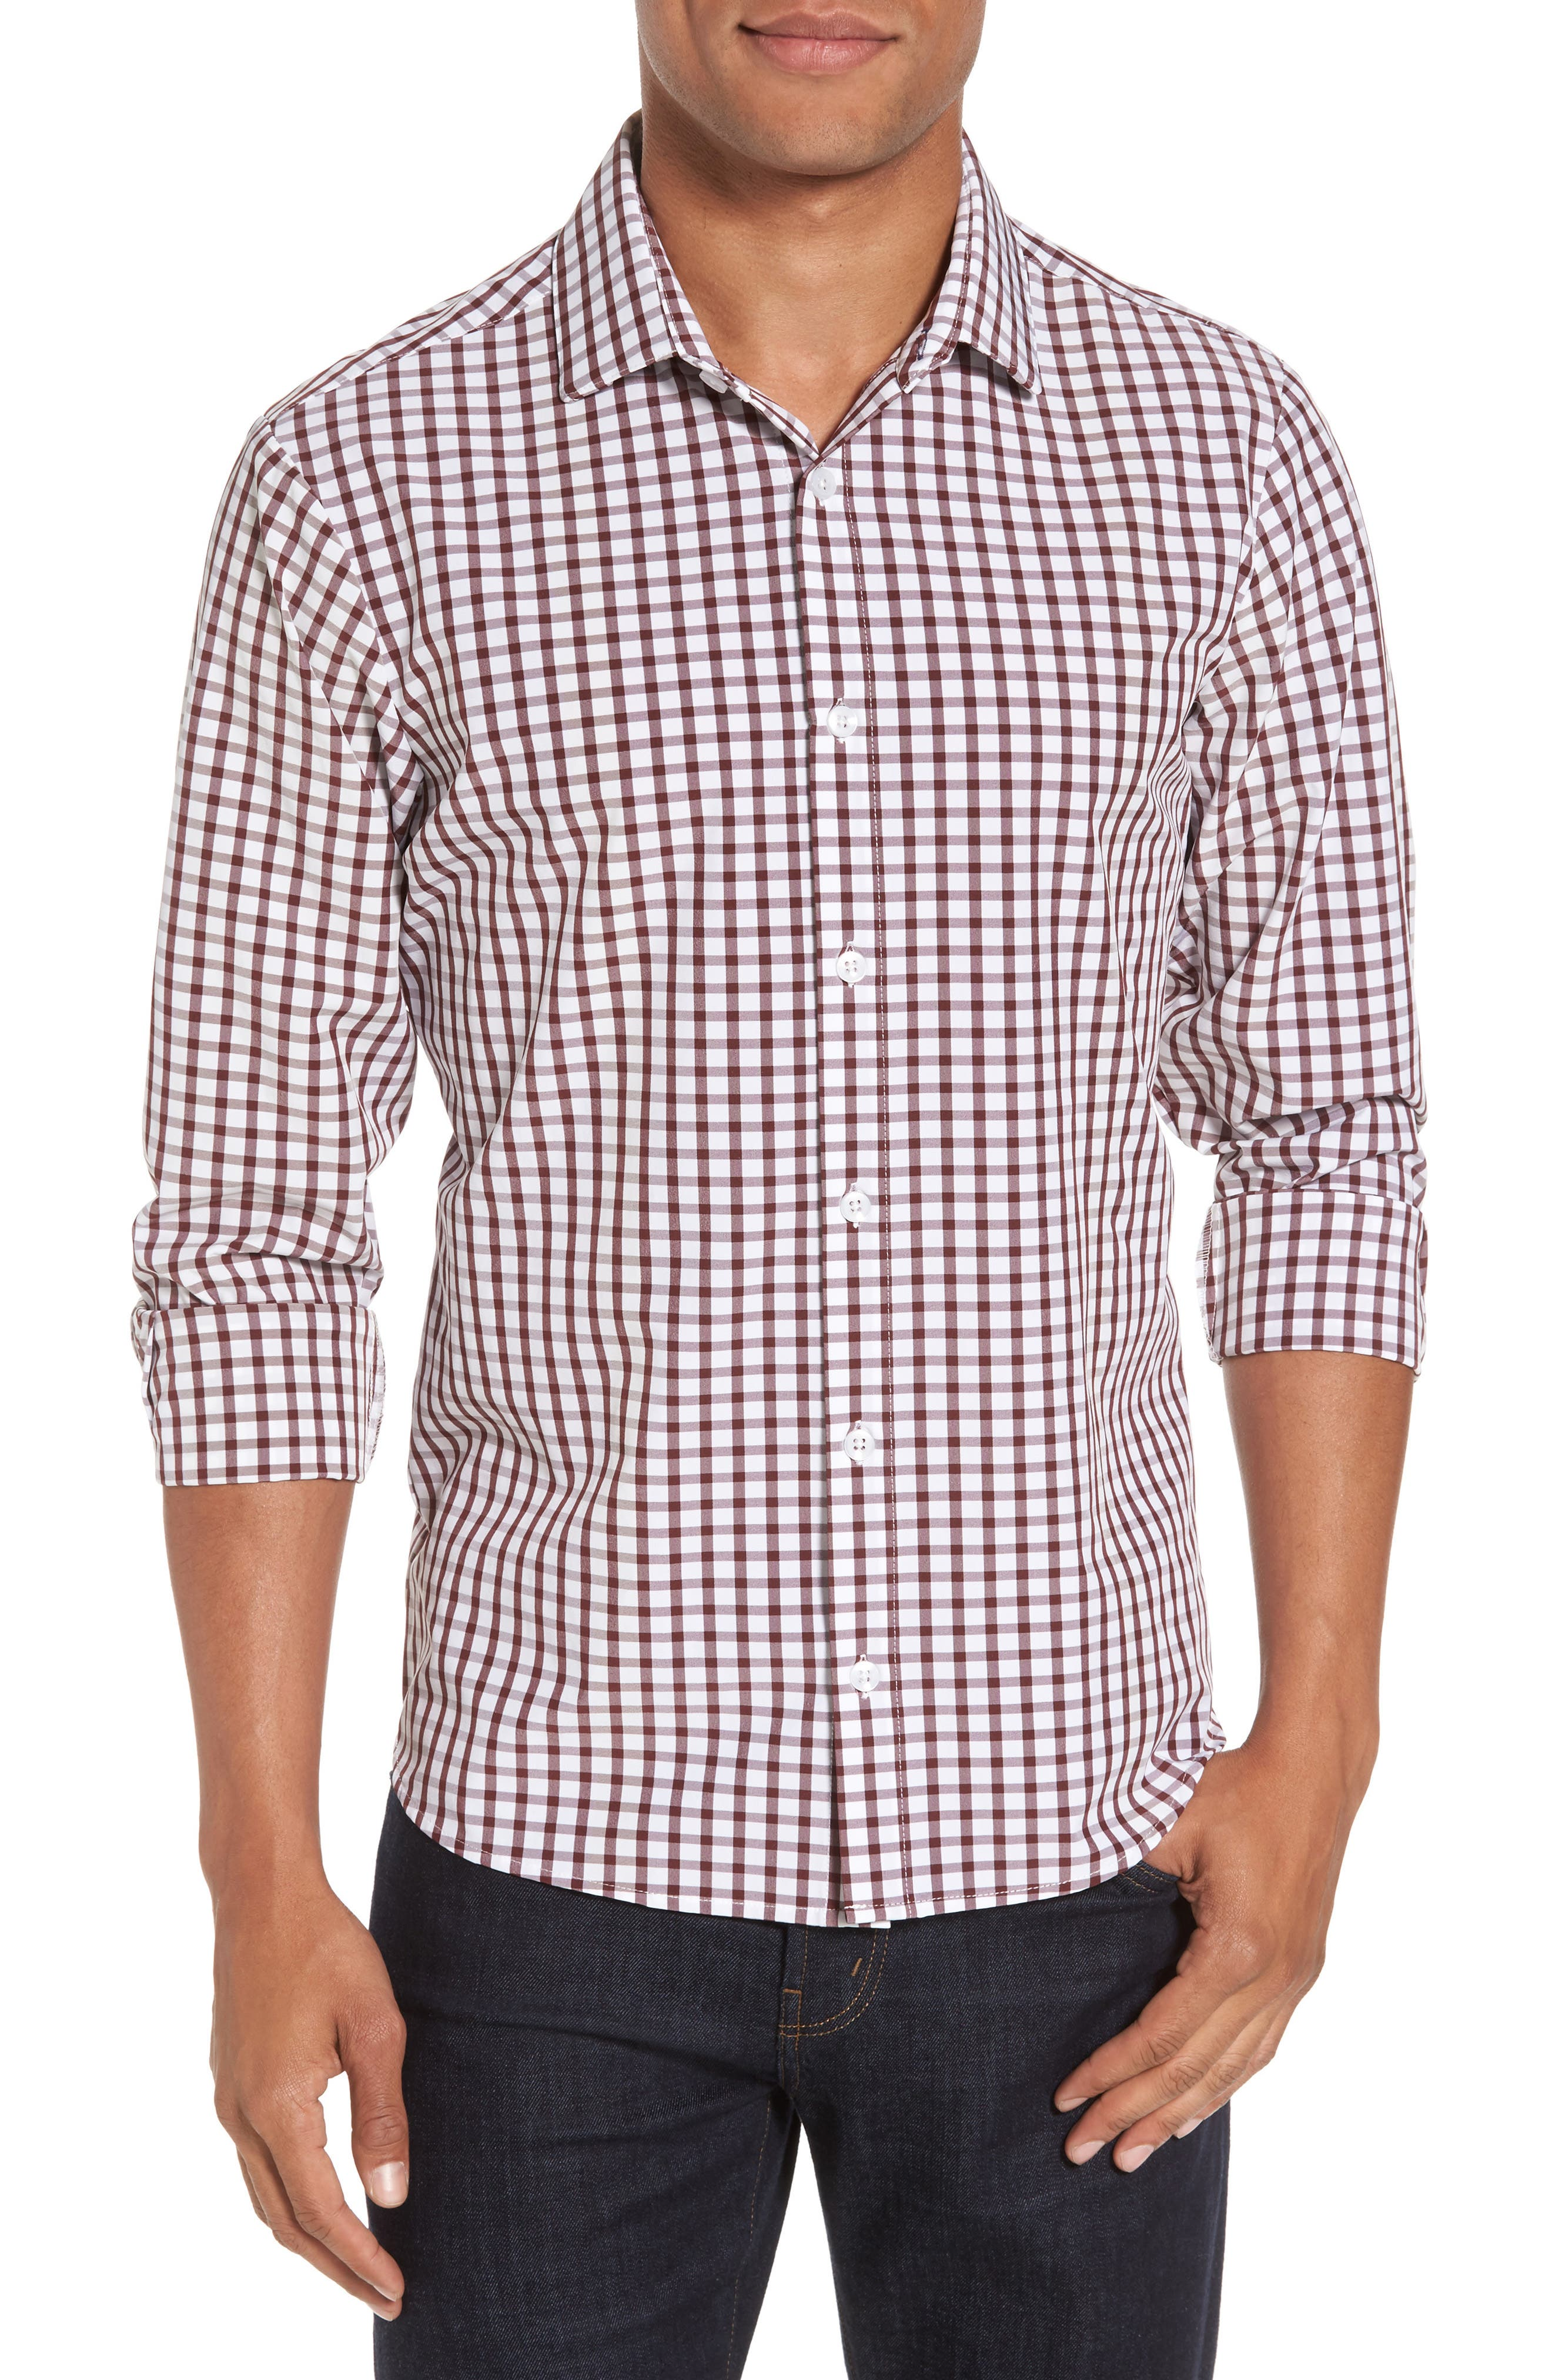 Cooper Check Performance Sport Shirt,                             Main thumbnail 1, color,                             Red